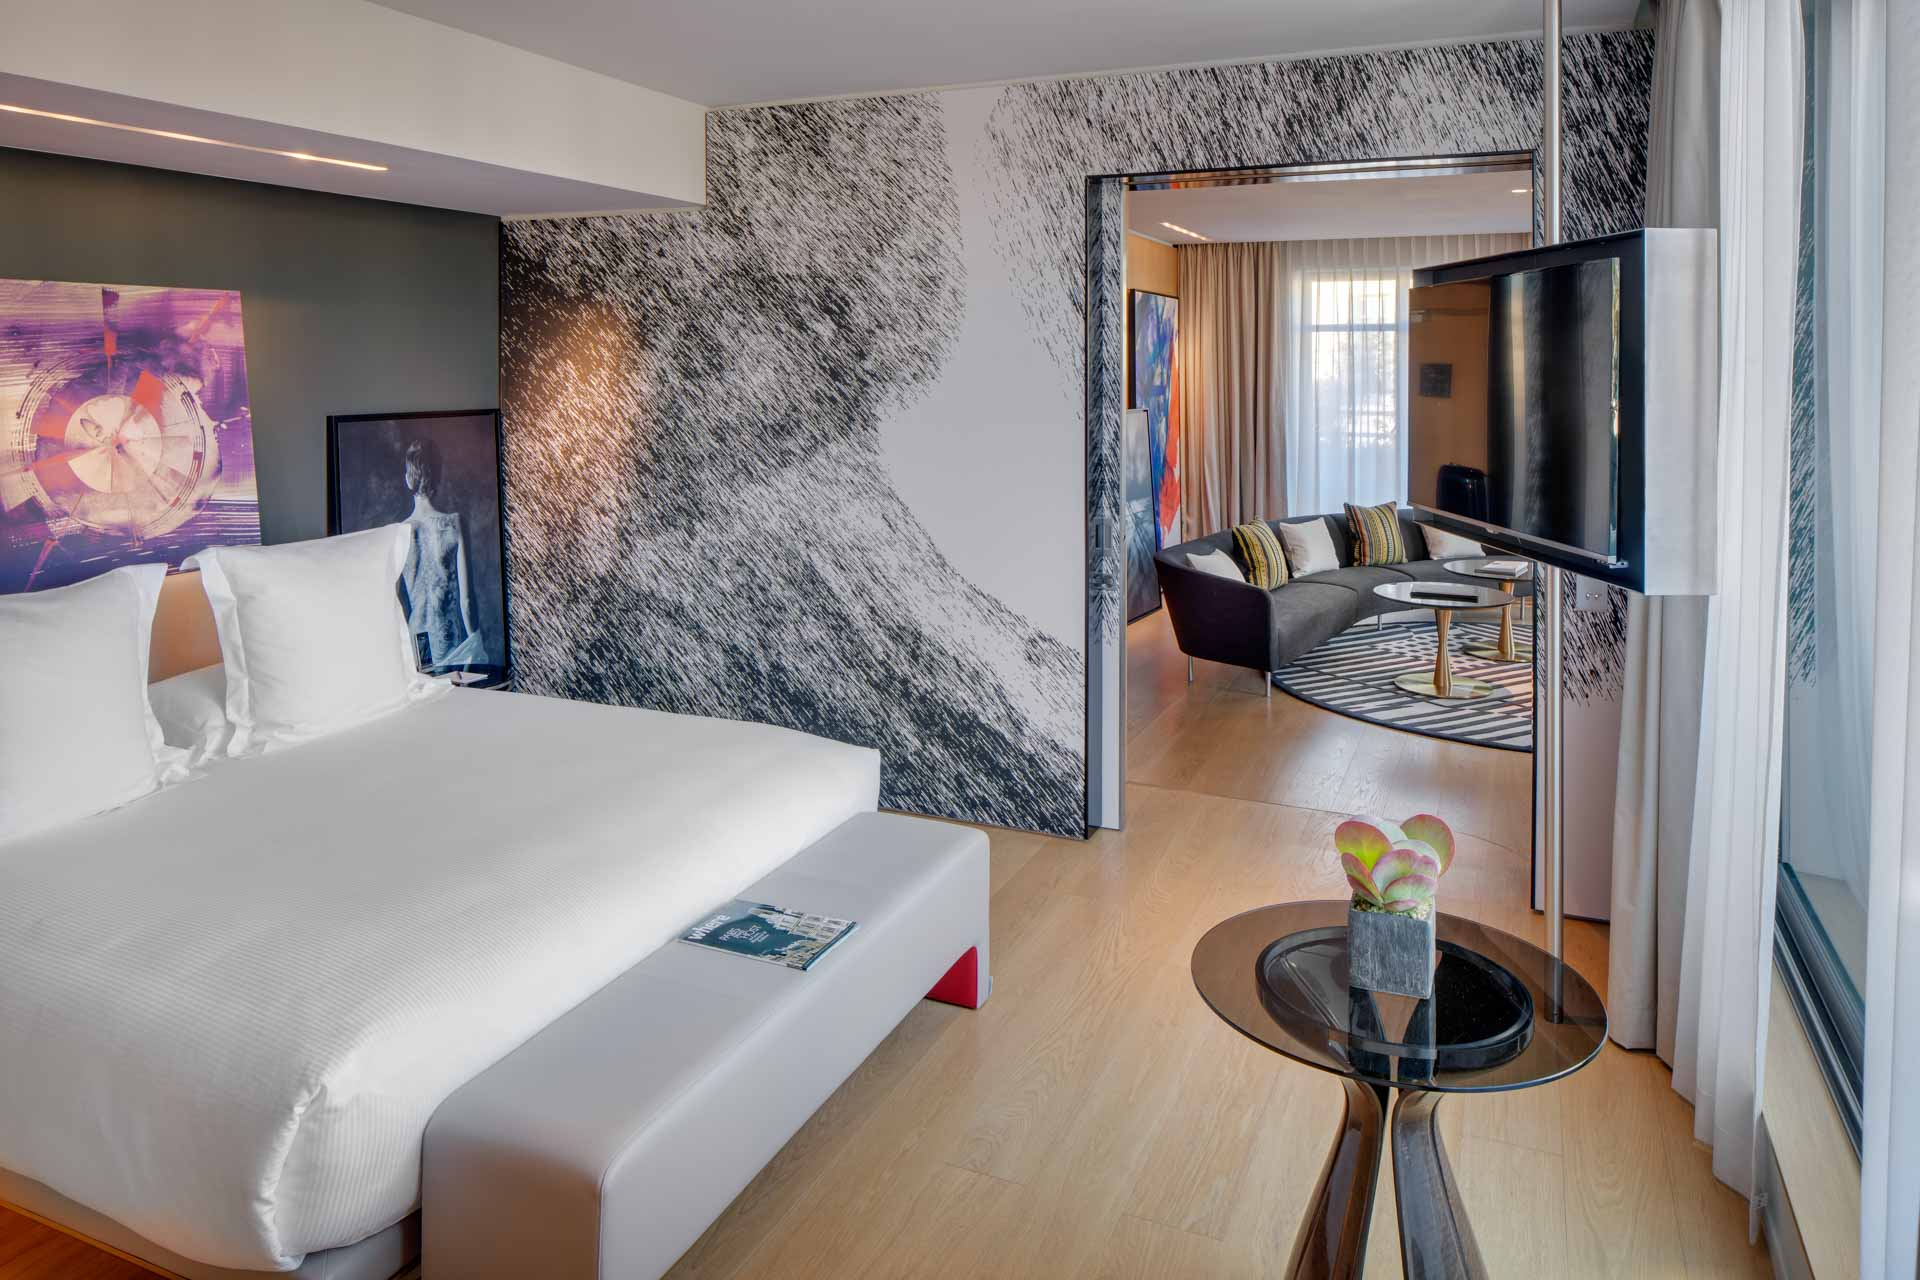 Suite at the Hotel Le Cinque Codet Paris